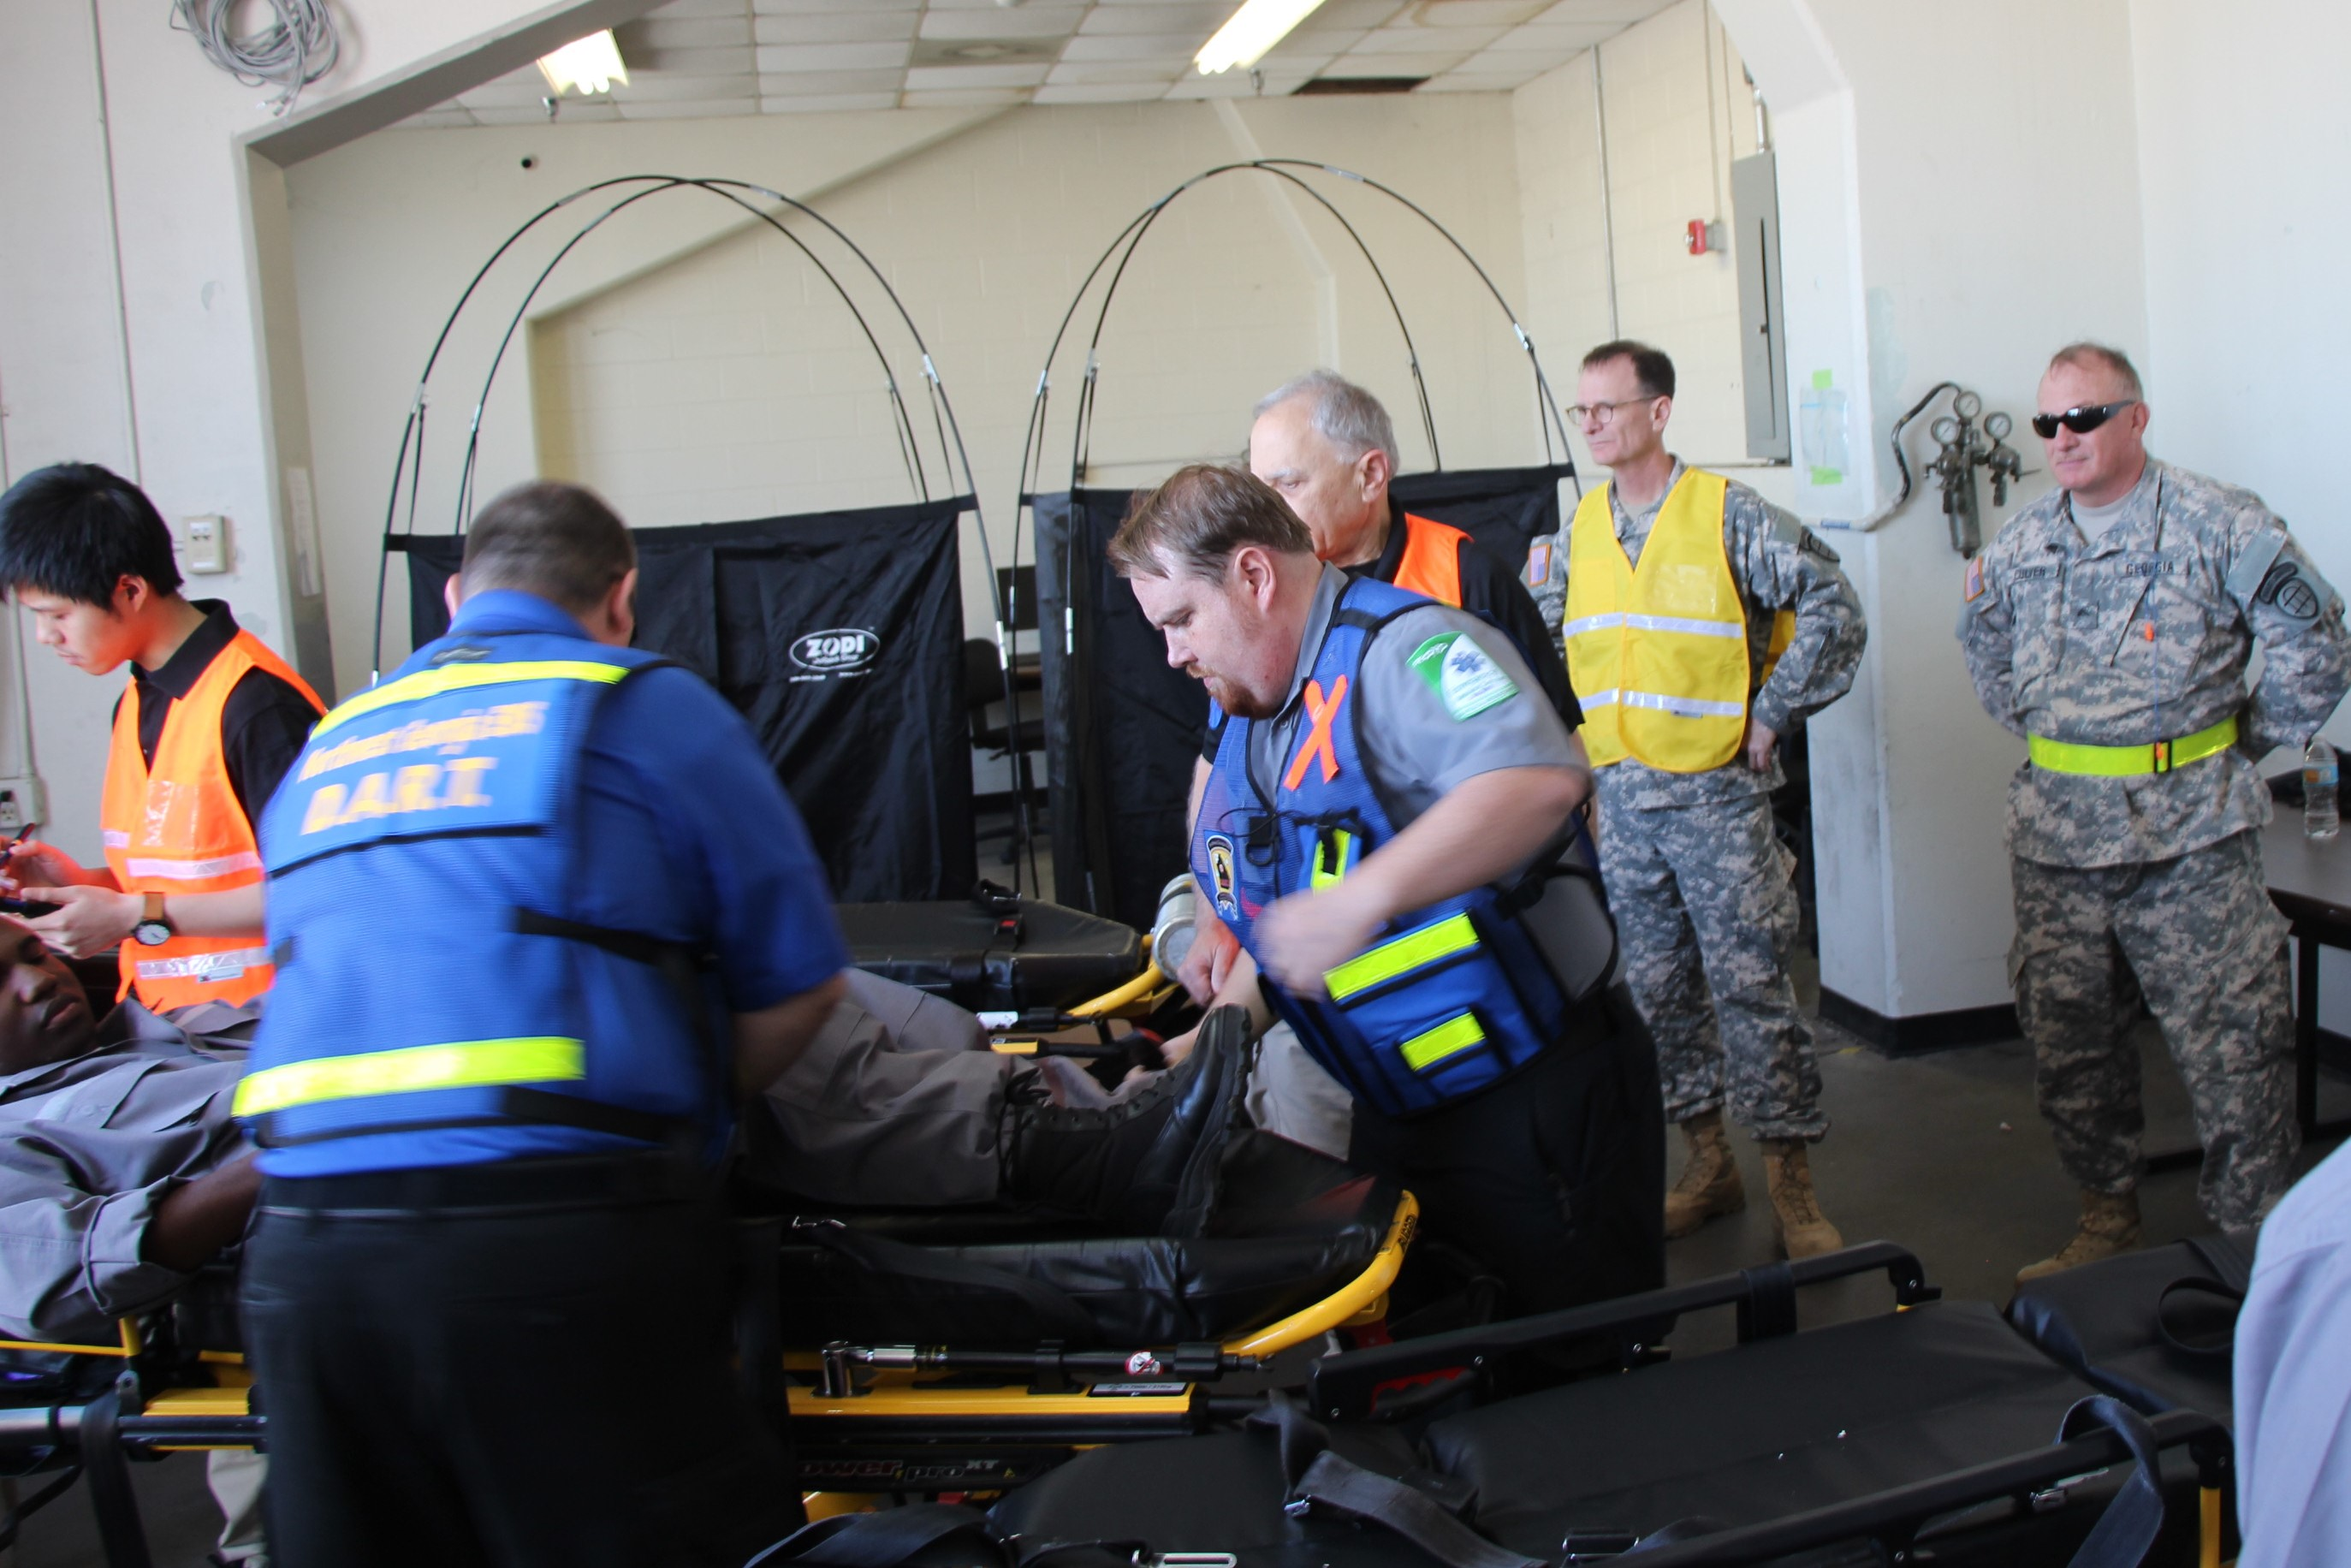 Joint GA State Medical Assessment Team conducts a triage assessment for the victim of the disaster (role player) as GA State Defense Force soldiers are staying nearby ready to assist during the Vigilant Guard 2017 exercise March 29, 2017, at Air Dominance Center in Savannah, GA. Vigilant Guard 2017 Georgia is a multi-state multi-agency training exercise, sponsored by U.S. Northern Command, in collaboration with the National Guard Bureau.  Georgia State Defense Force photo by Capt. Vadim Timchenko.